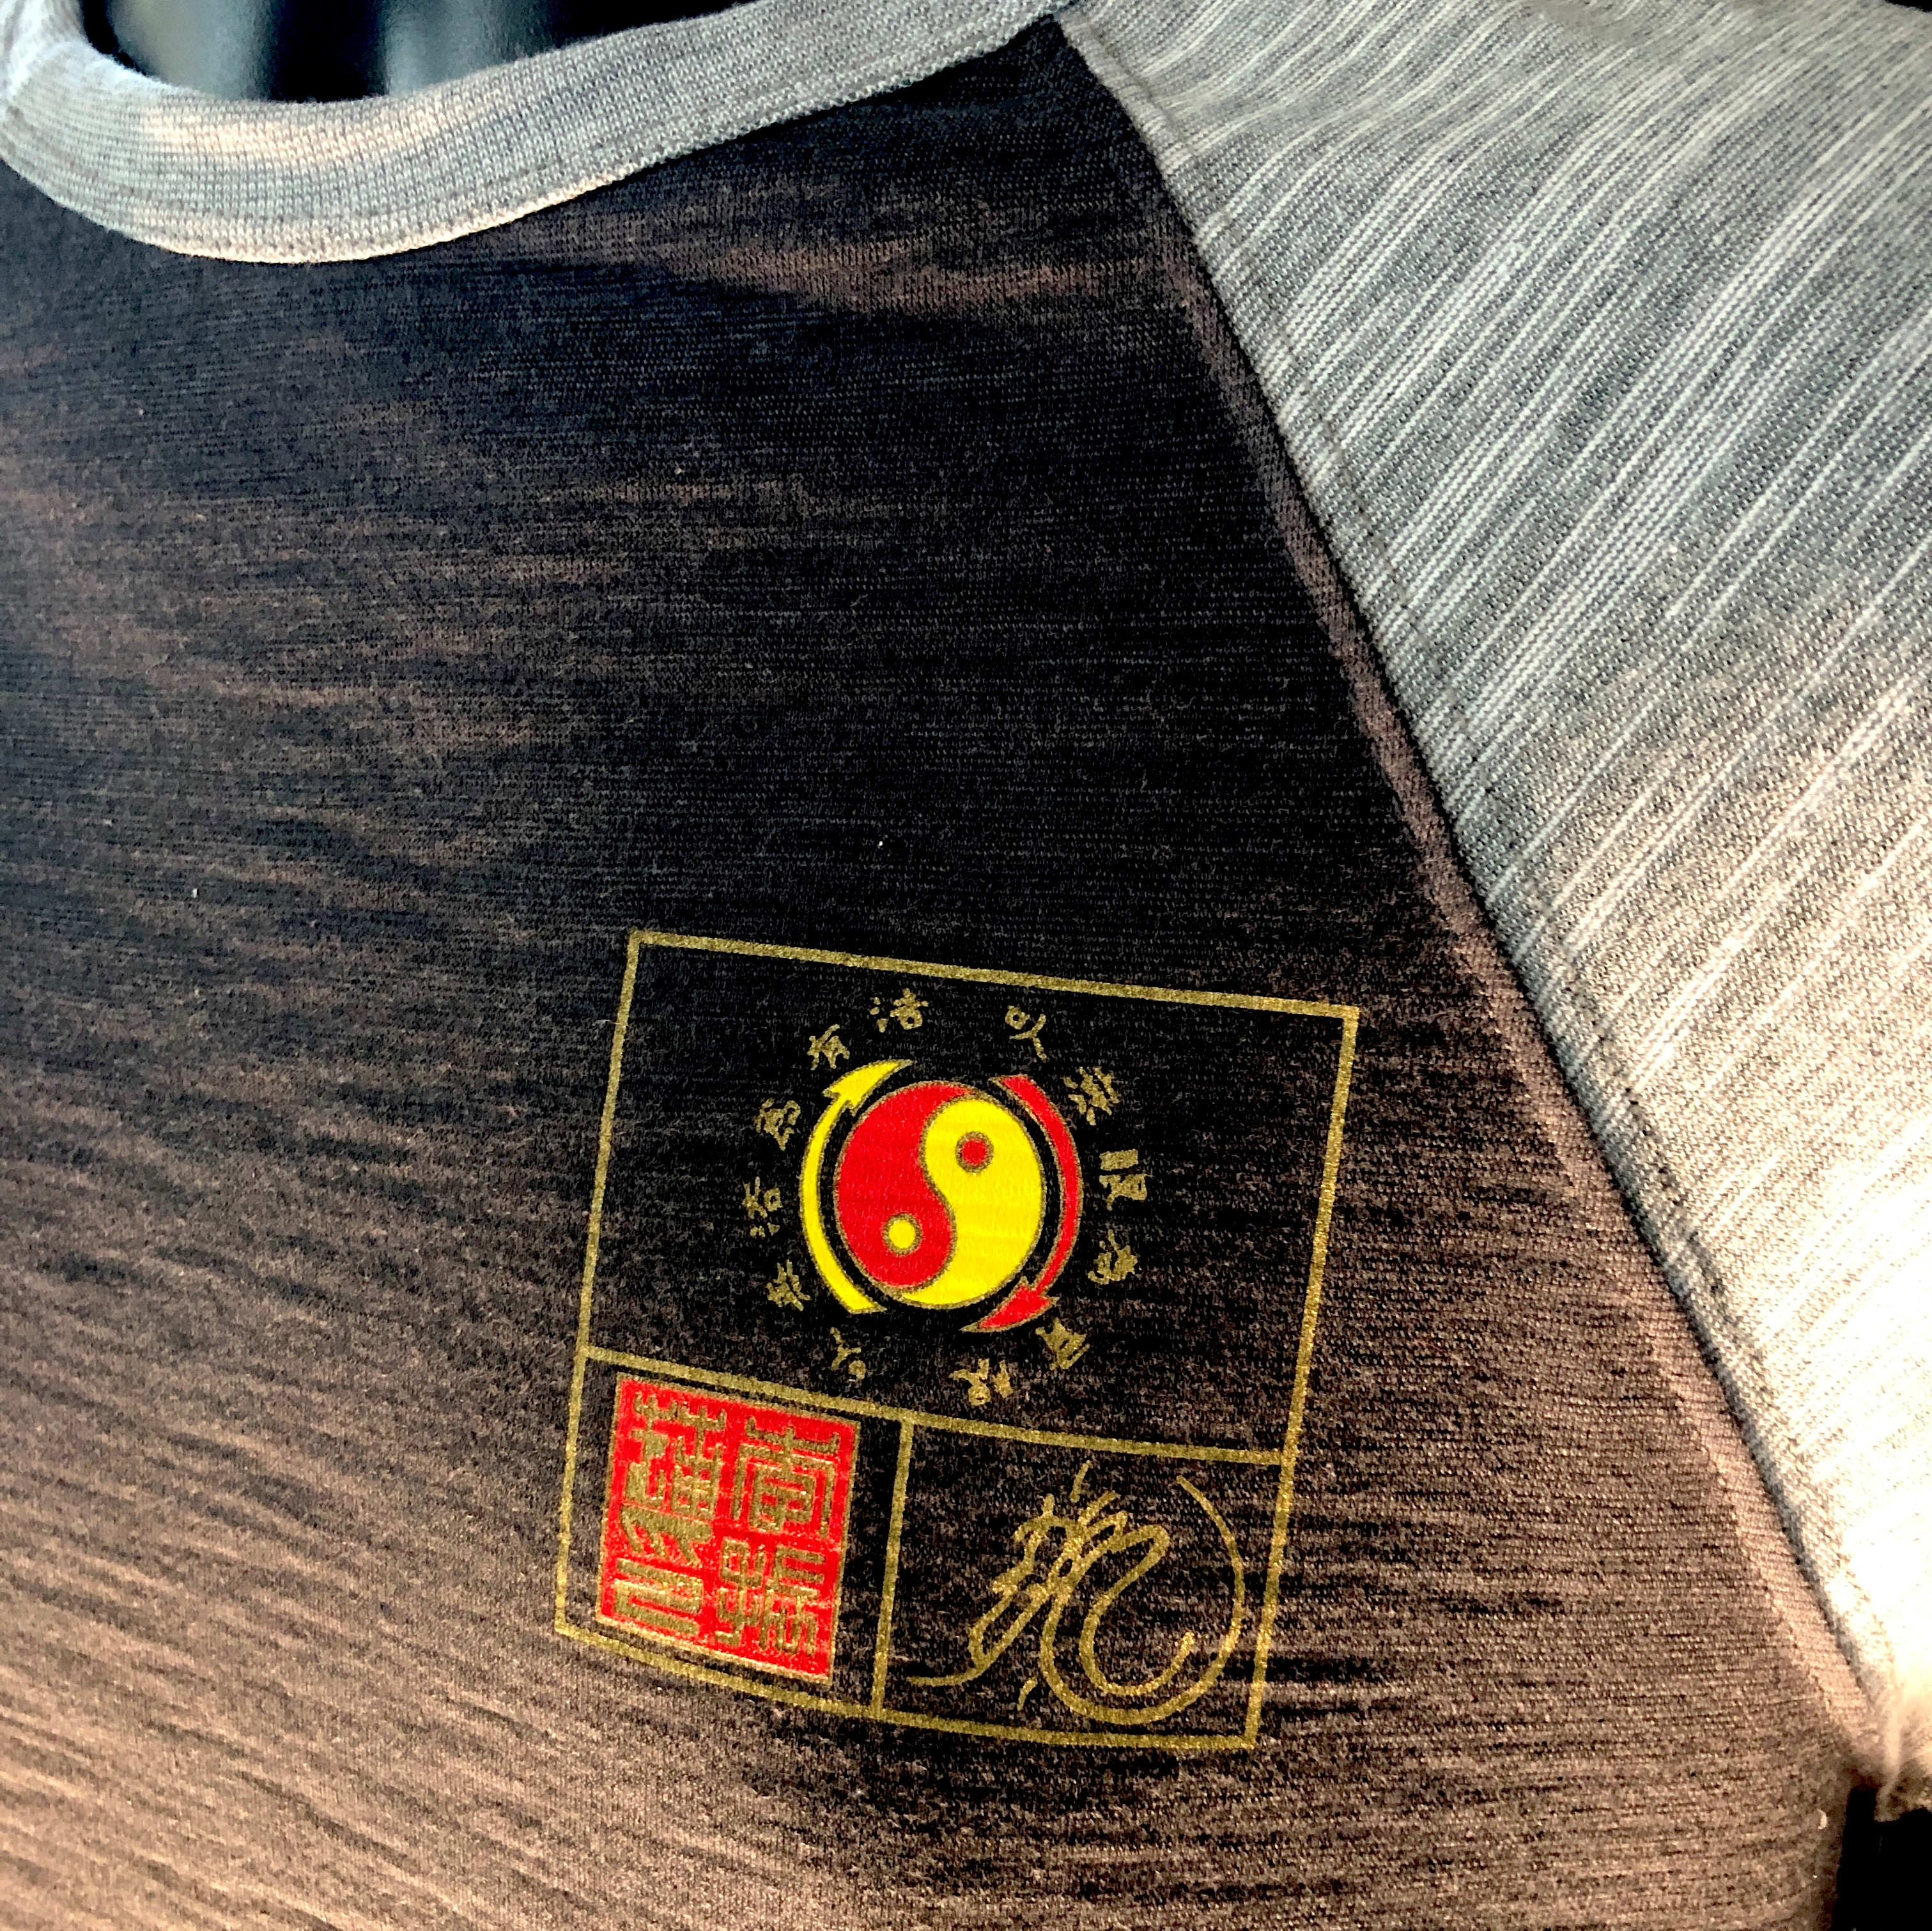 Jun Fan Jeet Kune Do Champion Raglan